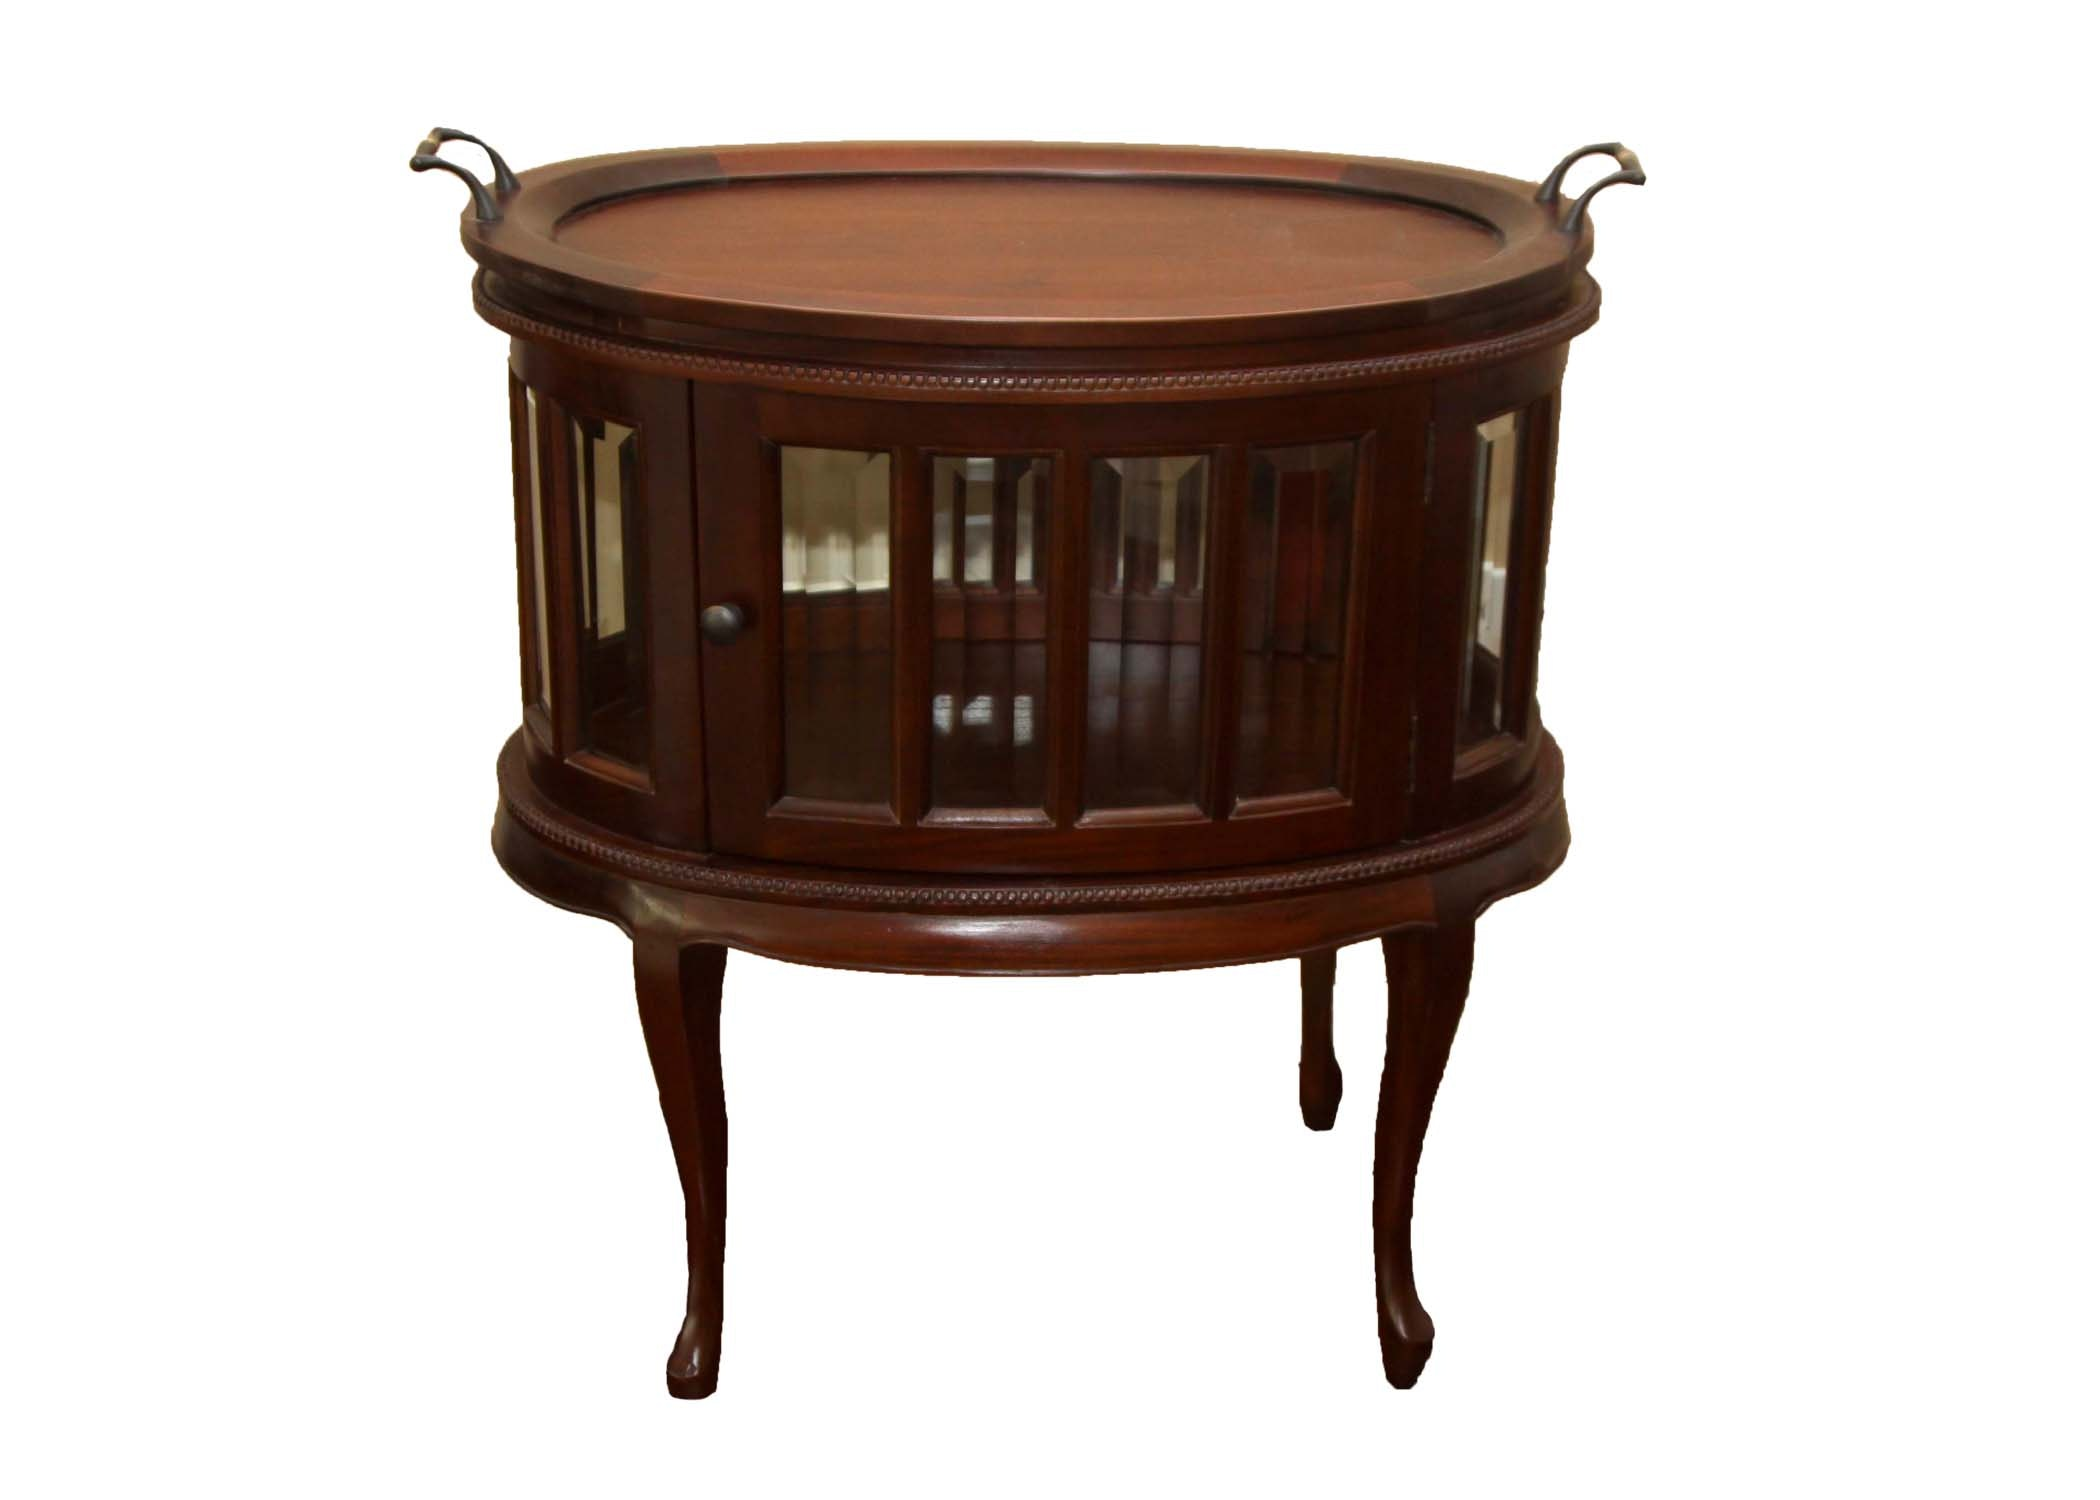 Oval Vitrine With Tea Tray By Arhaus Furniture ...